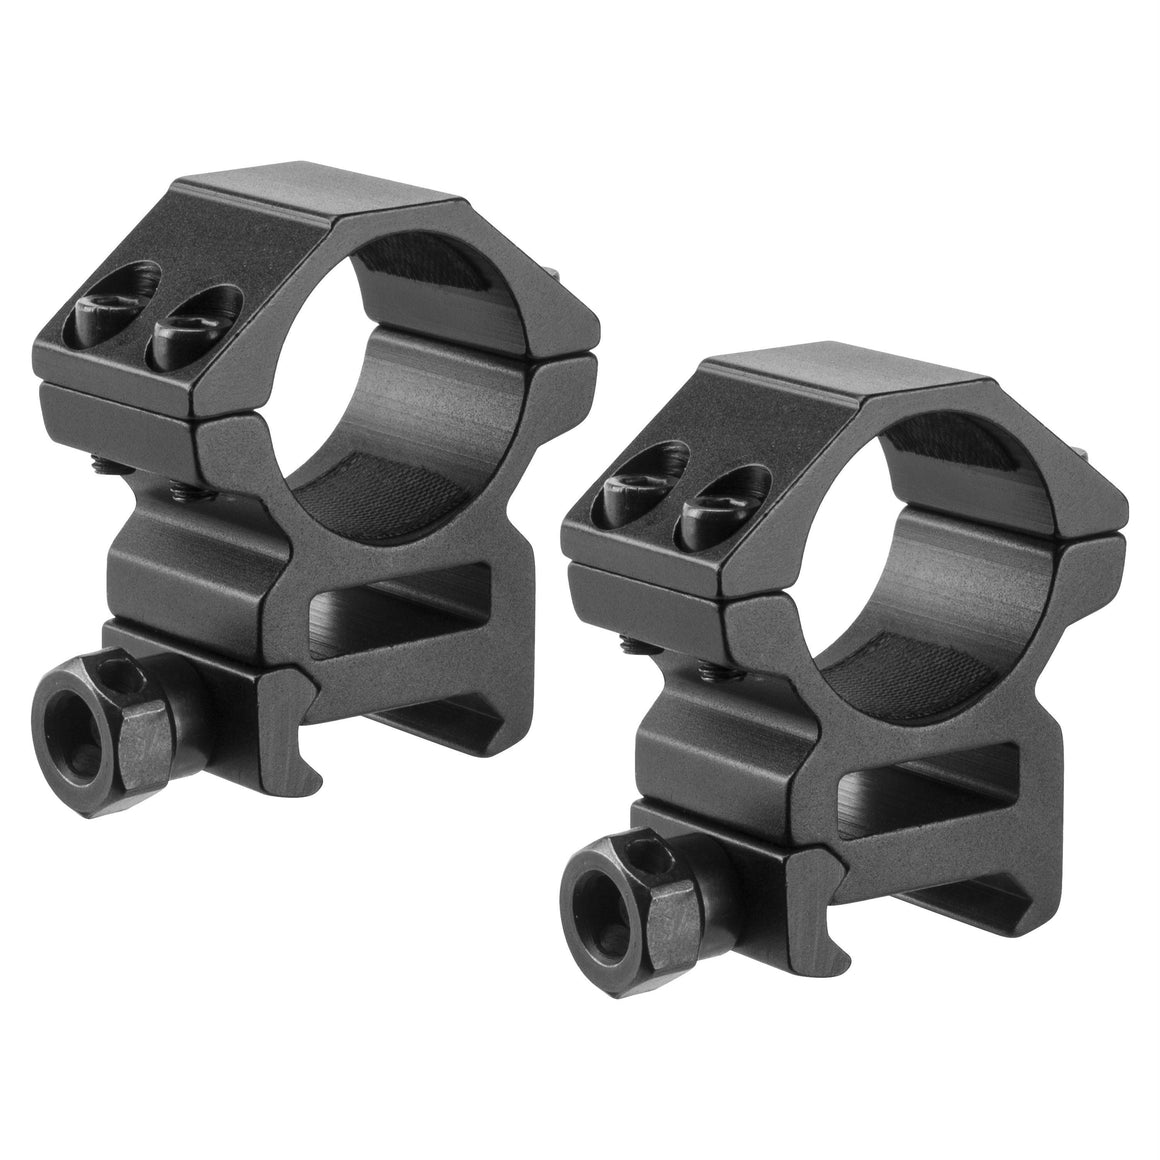 "Weaver Style HQ Rings - 1"" Medium Height, Matte Black"